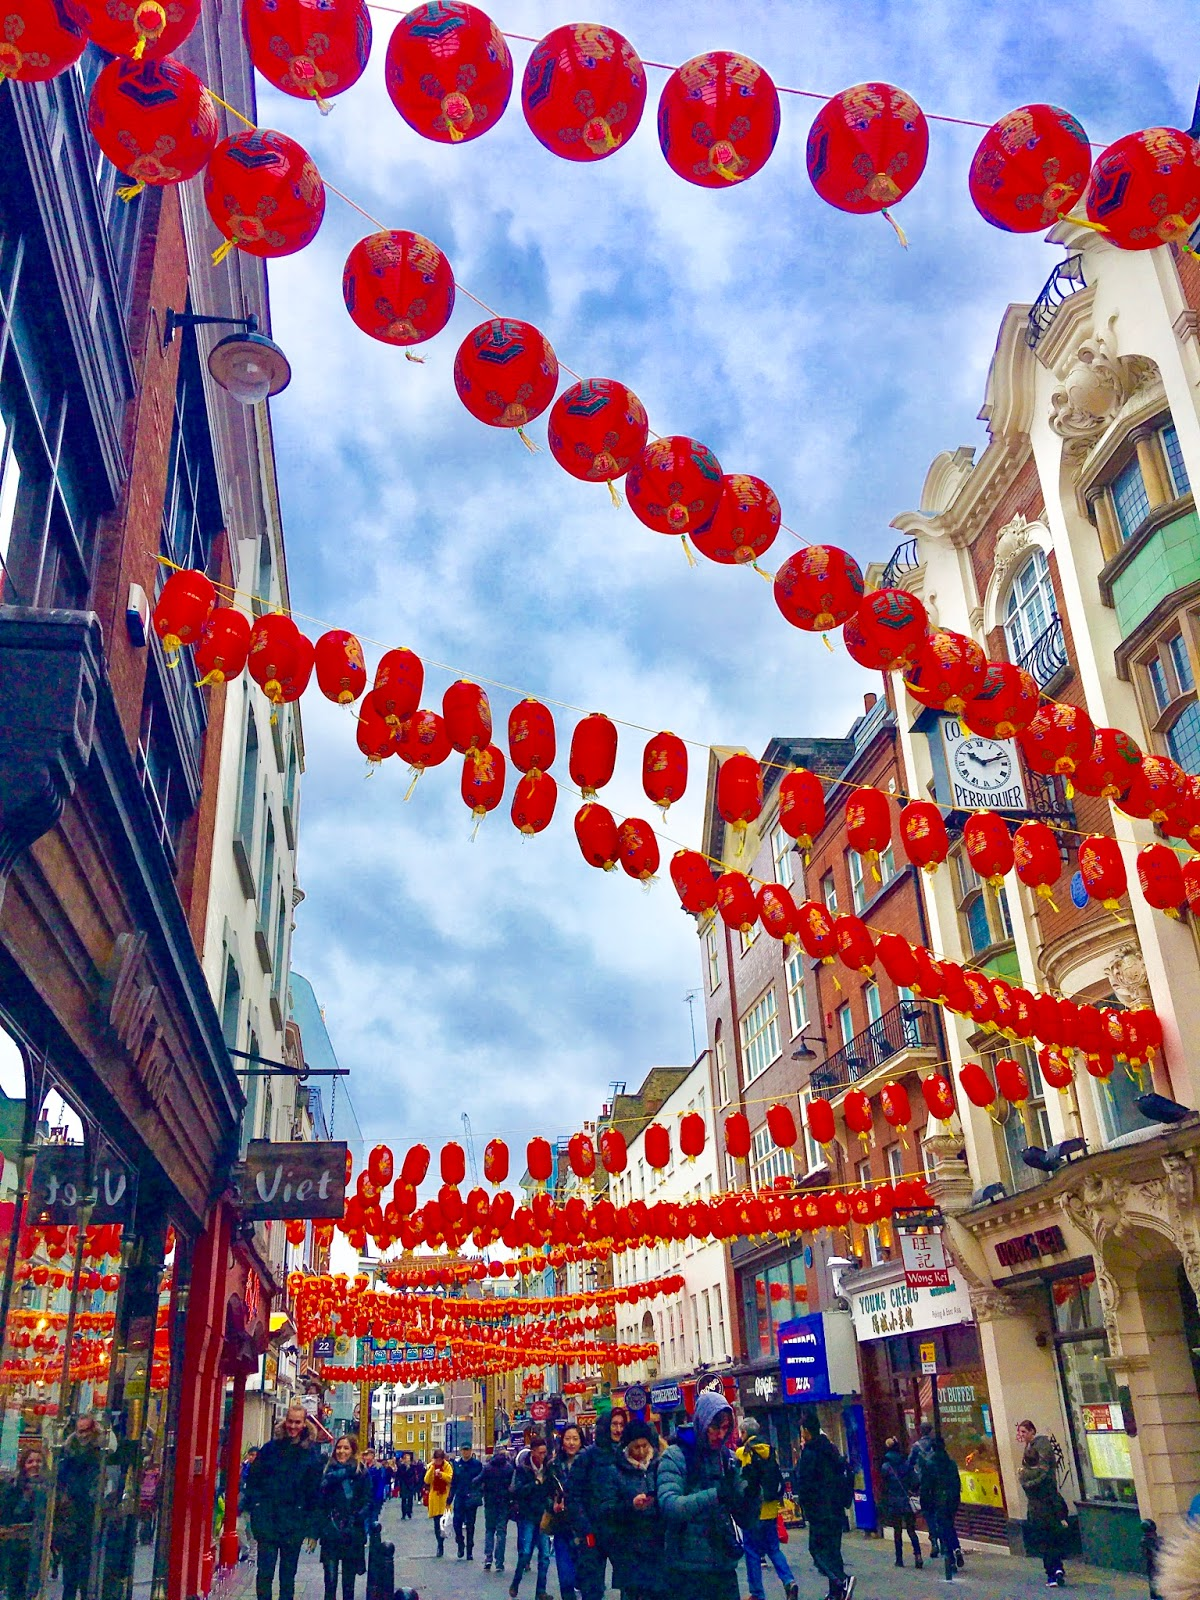 Photo of a street, the angle of the camera is pointing upwards. Chinese New Year laterns can be seen, with blue skiers in the background. The street is full of people.